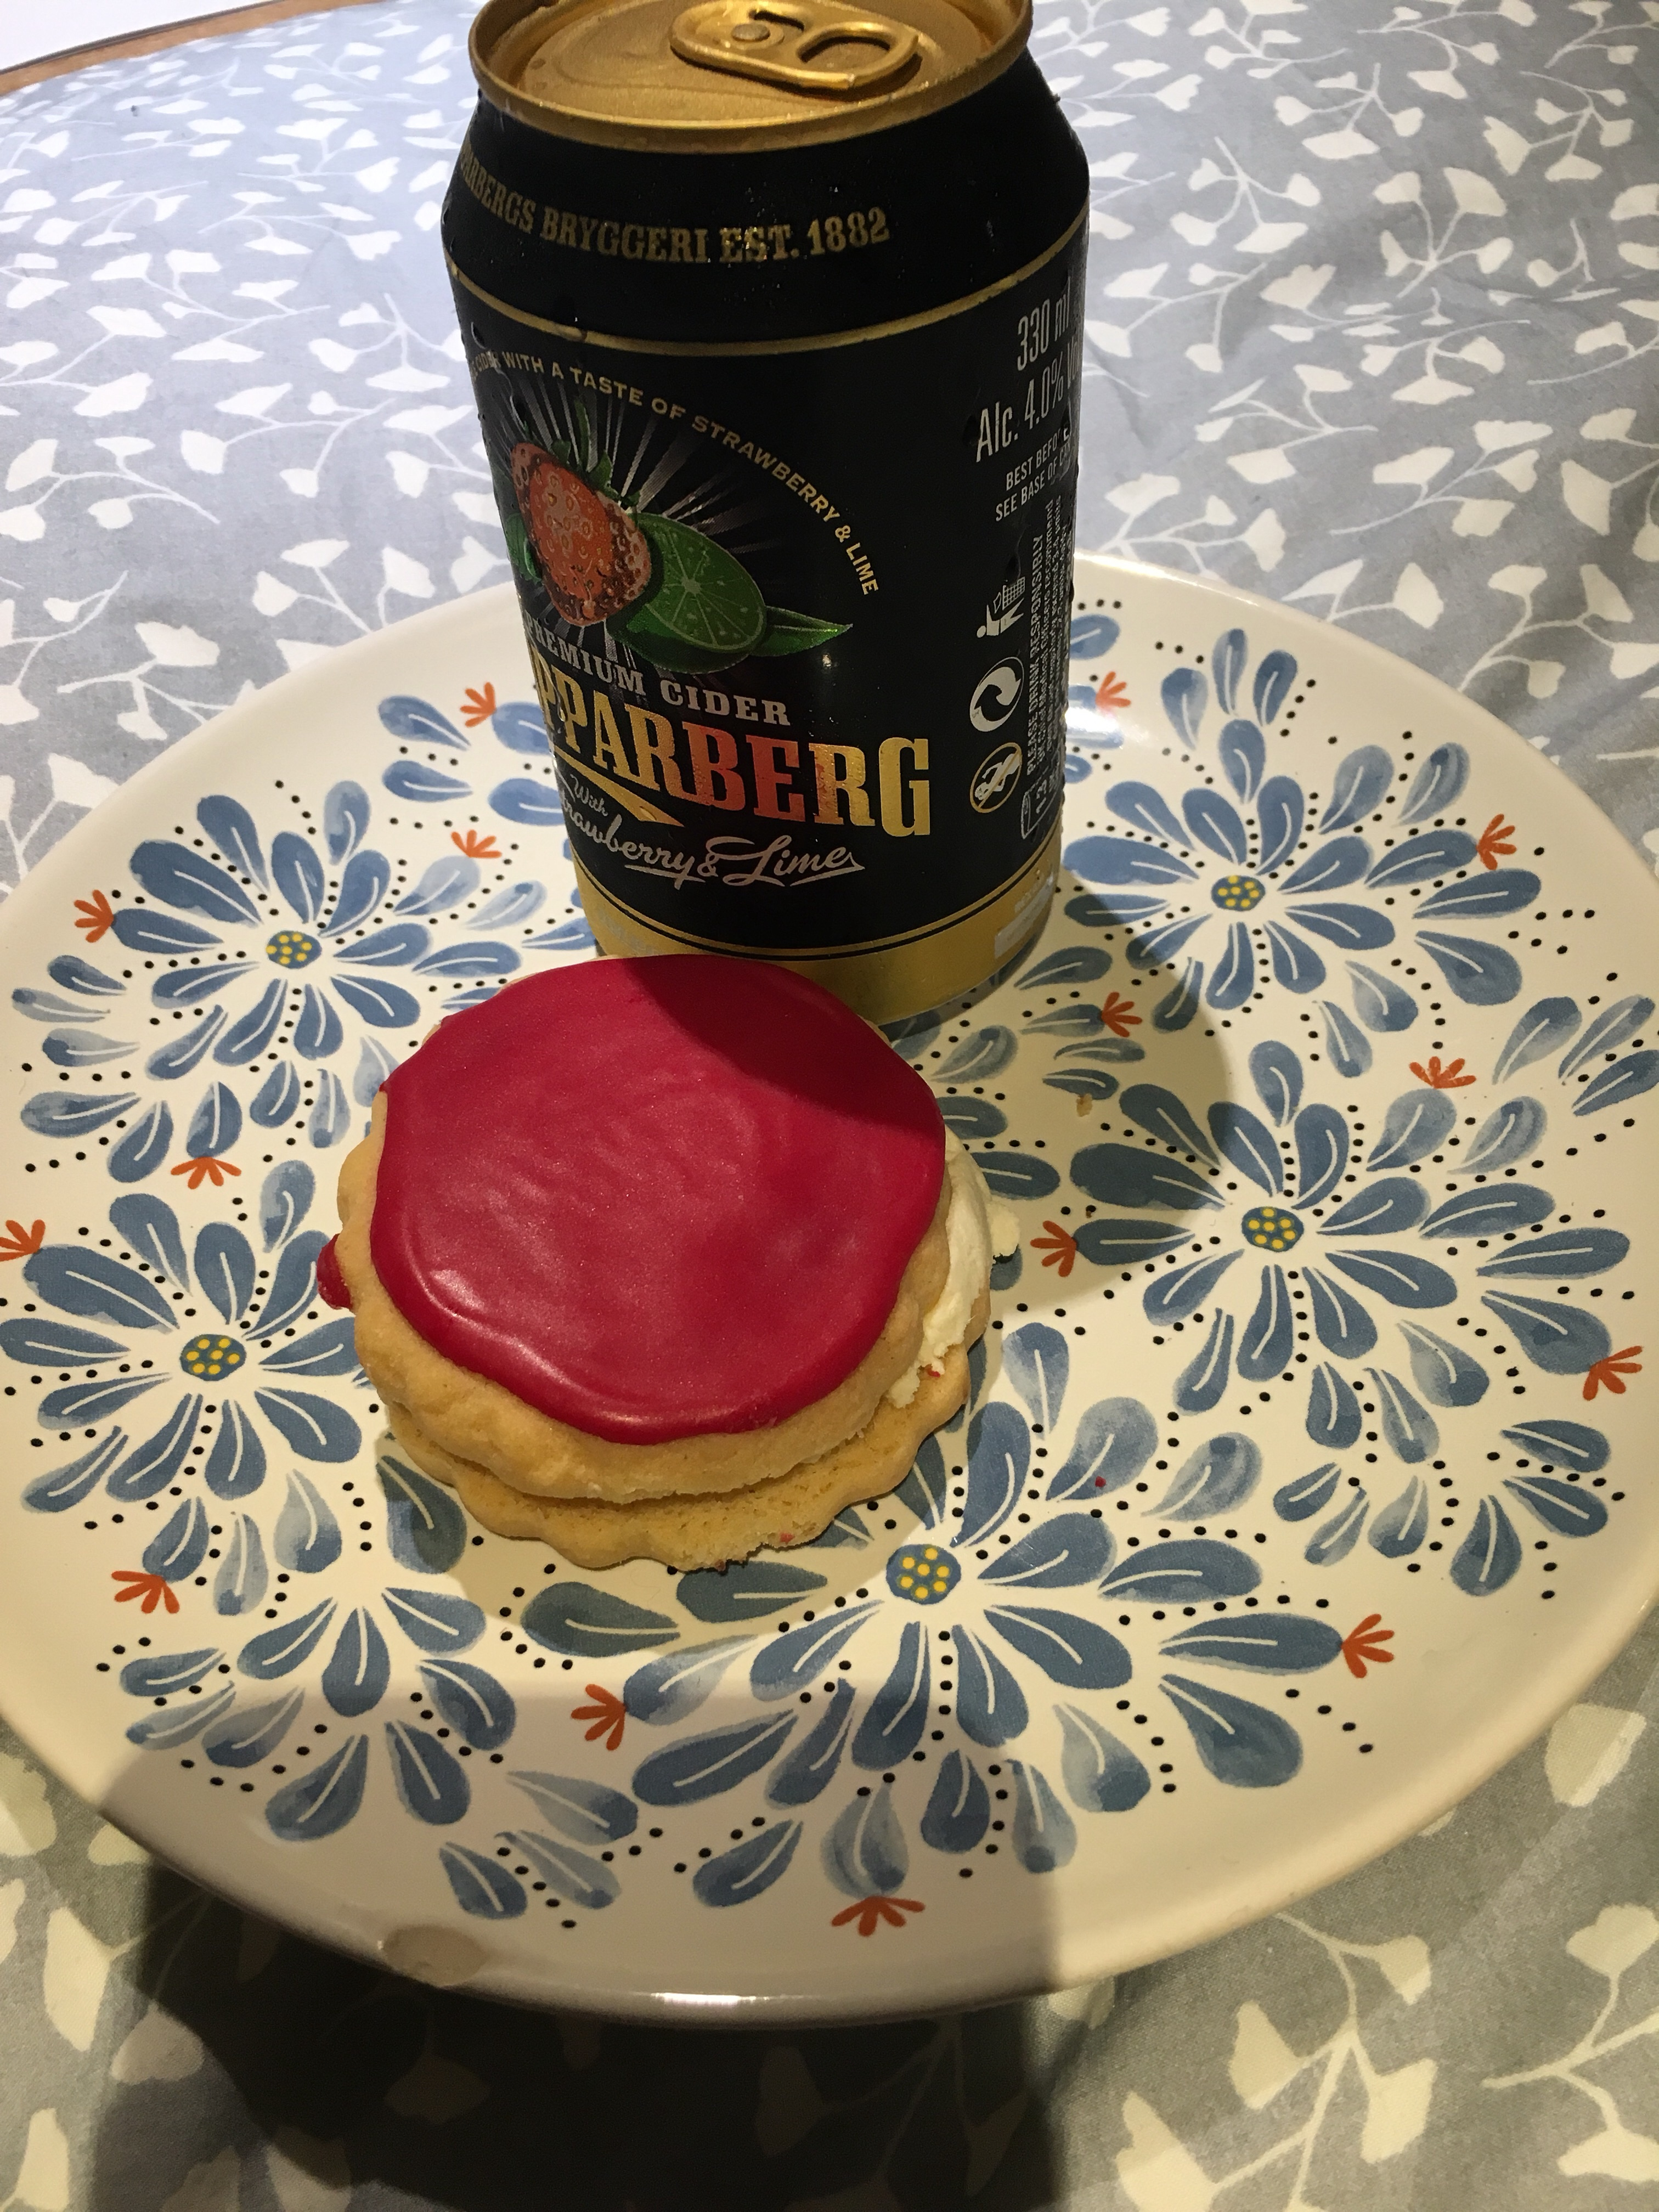 Pink biscuit and cold can of cider